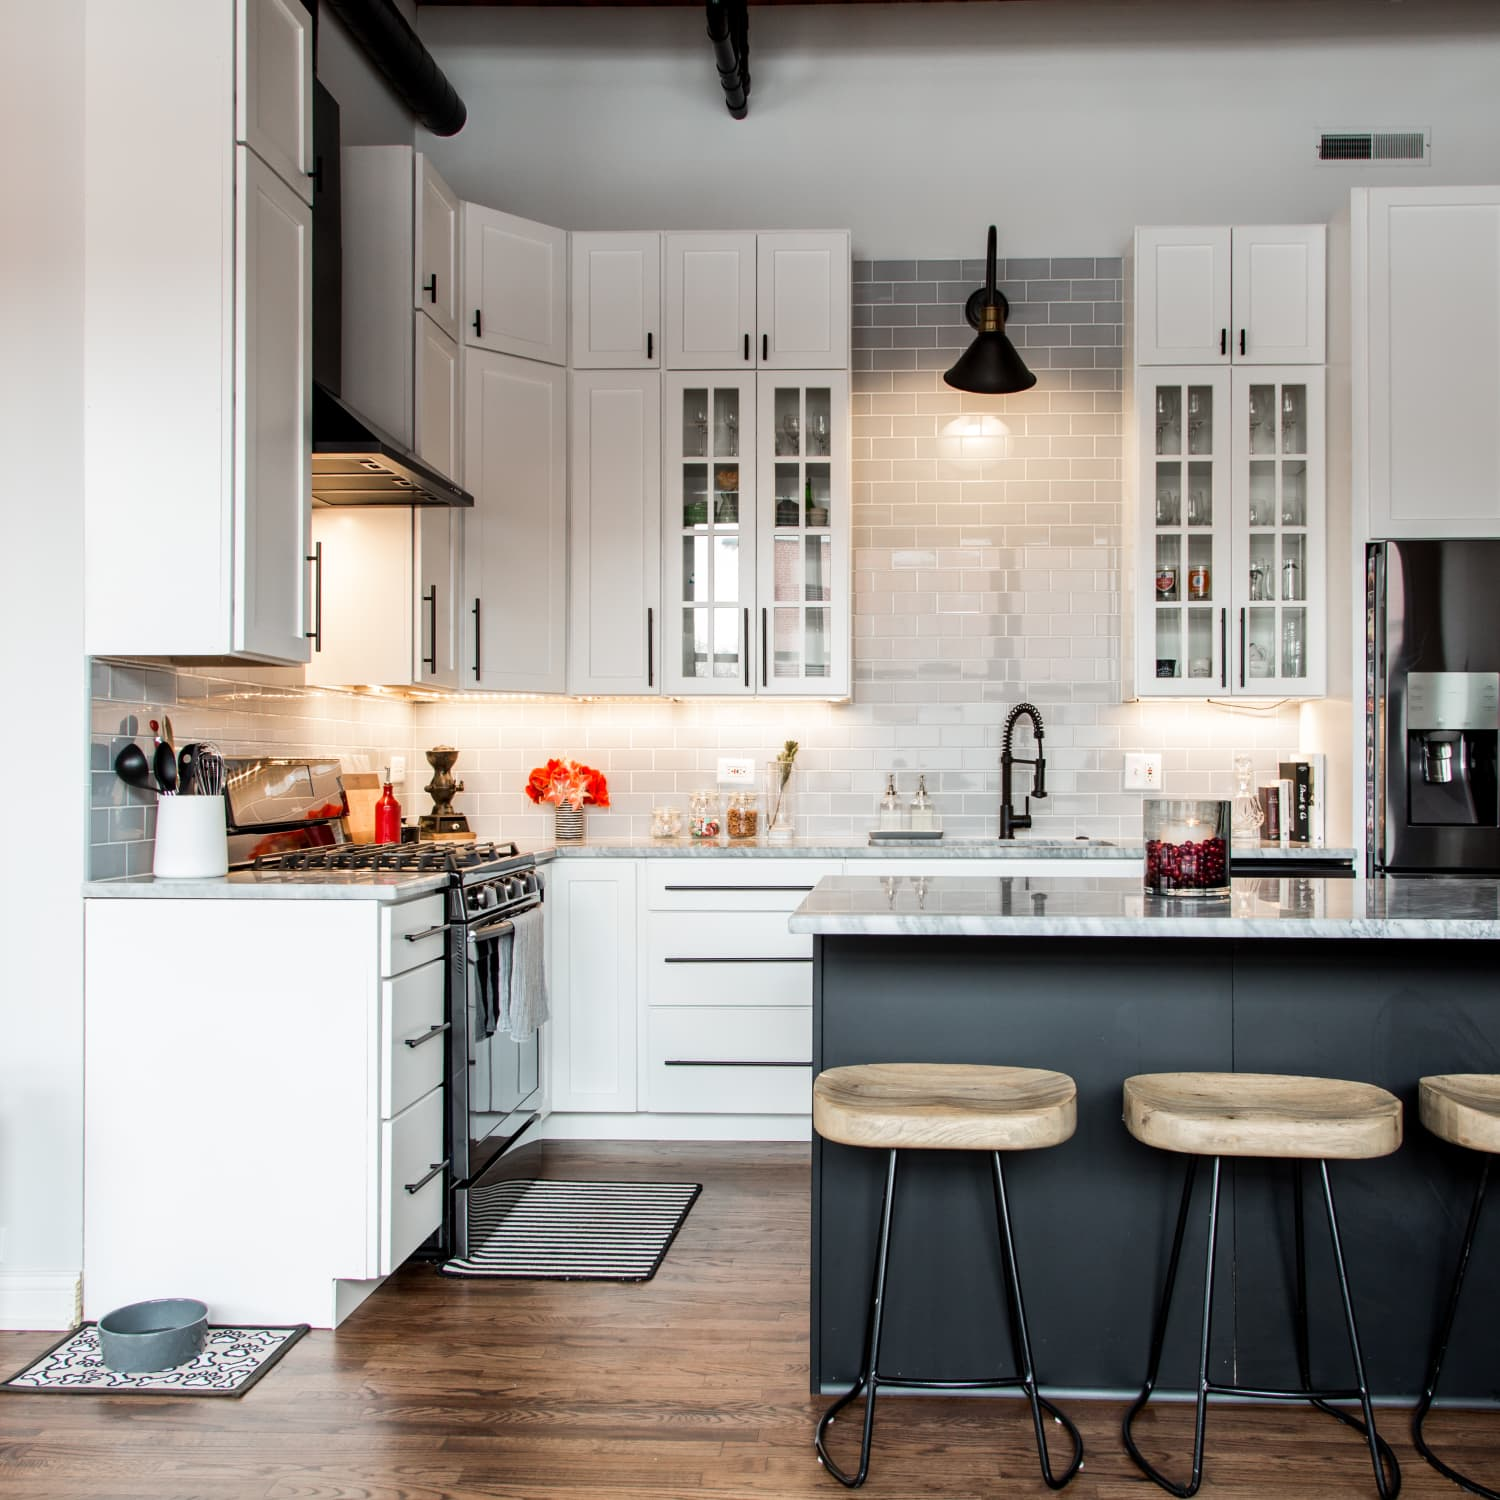 Why I Regret Buying A Black Stainless Steel Appliance Apartment Therapy